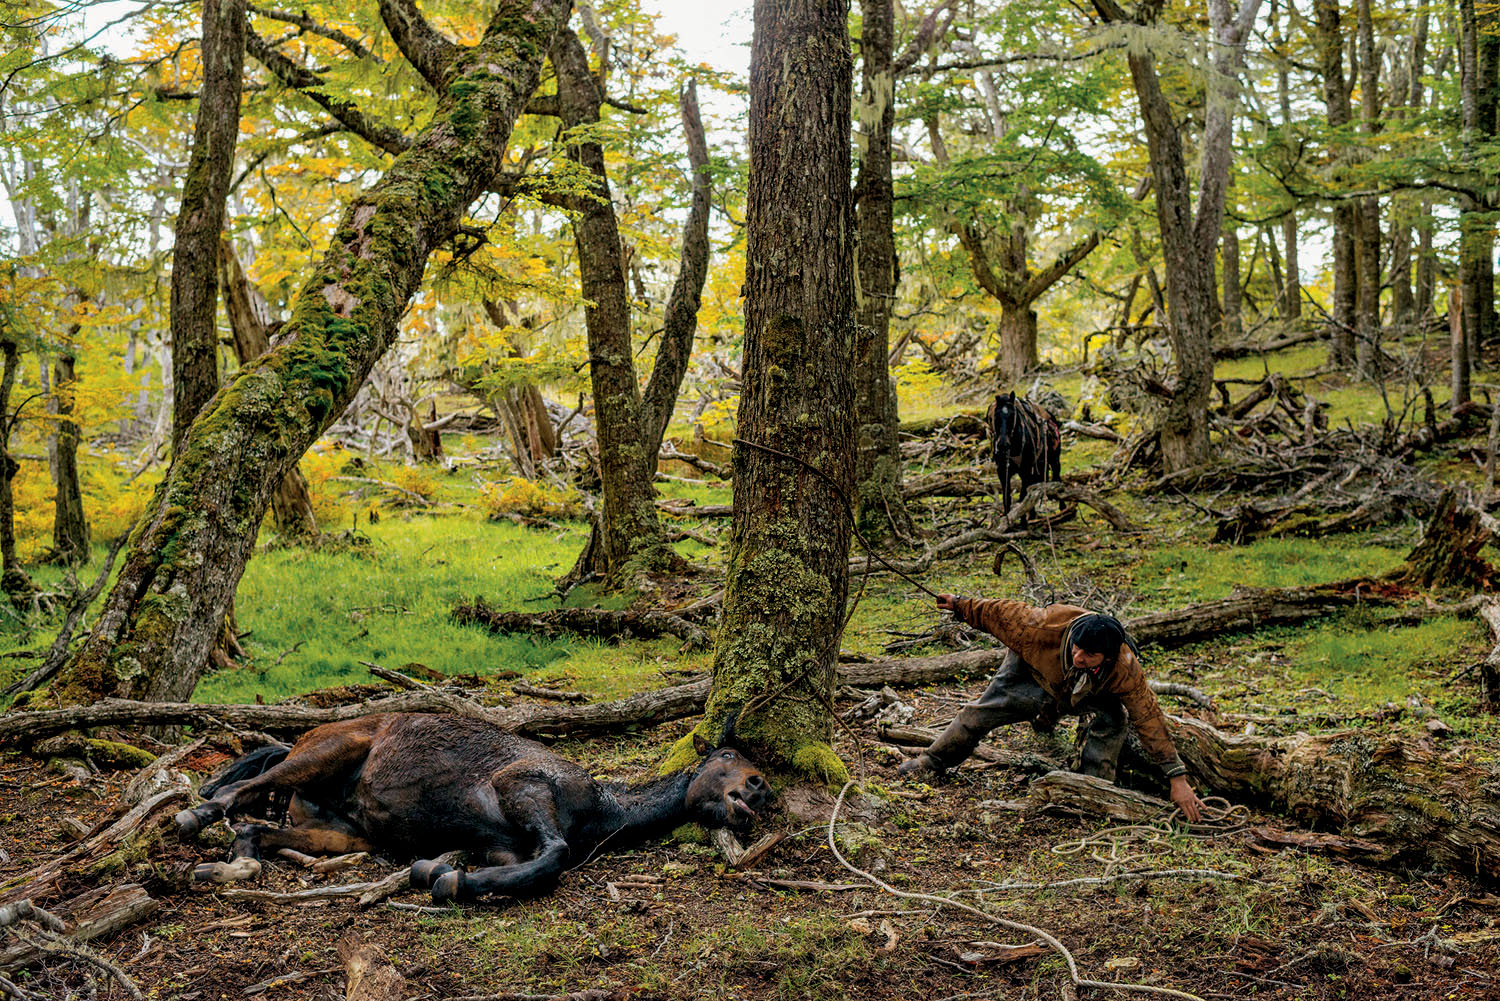 From the December issue of National Geographic magazine:  Cowboys on the EdgeFeral horses and cattle are tied to trees for two or three days until exhaustion renders them pliable and they can be led to ferries or trucks heading for market. Chilean Patagonia.